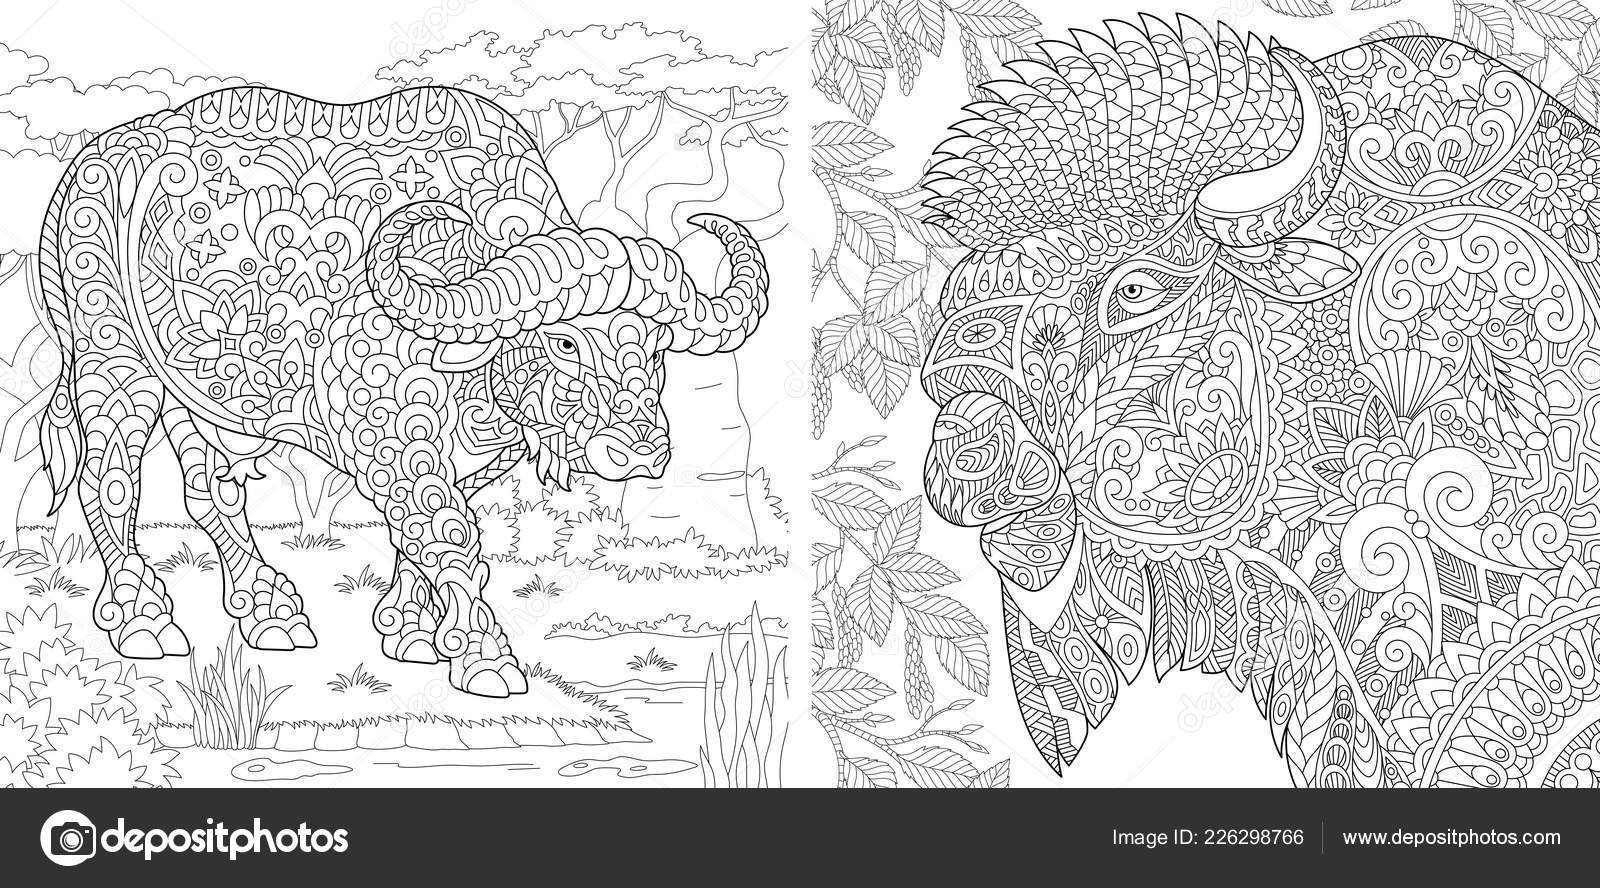 Images Buffalo For Colouring Coloring Pages Coloring Book